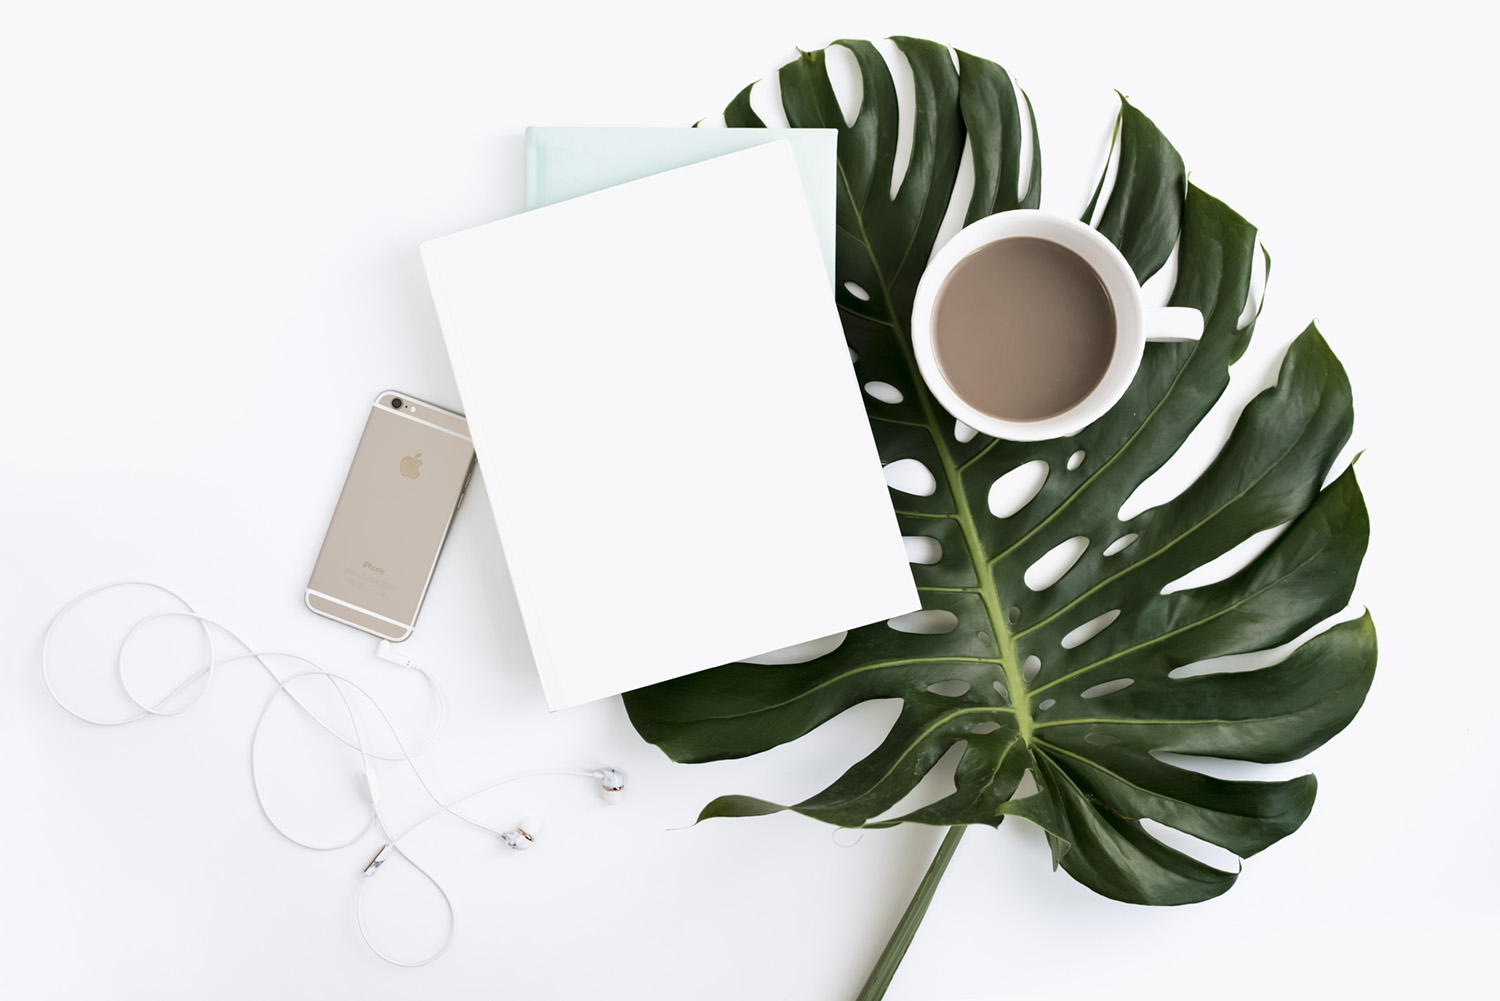 Her Creative Studio - Gorgeous femimine flat lays and tech images abound here. Sign up for the newsletter for monthly freebies including gorgeous desktop and phone wallpapers!